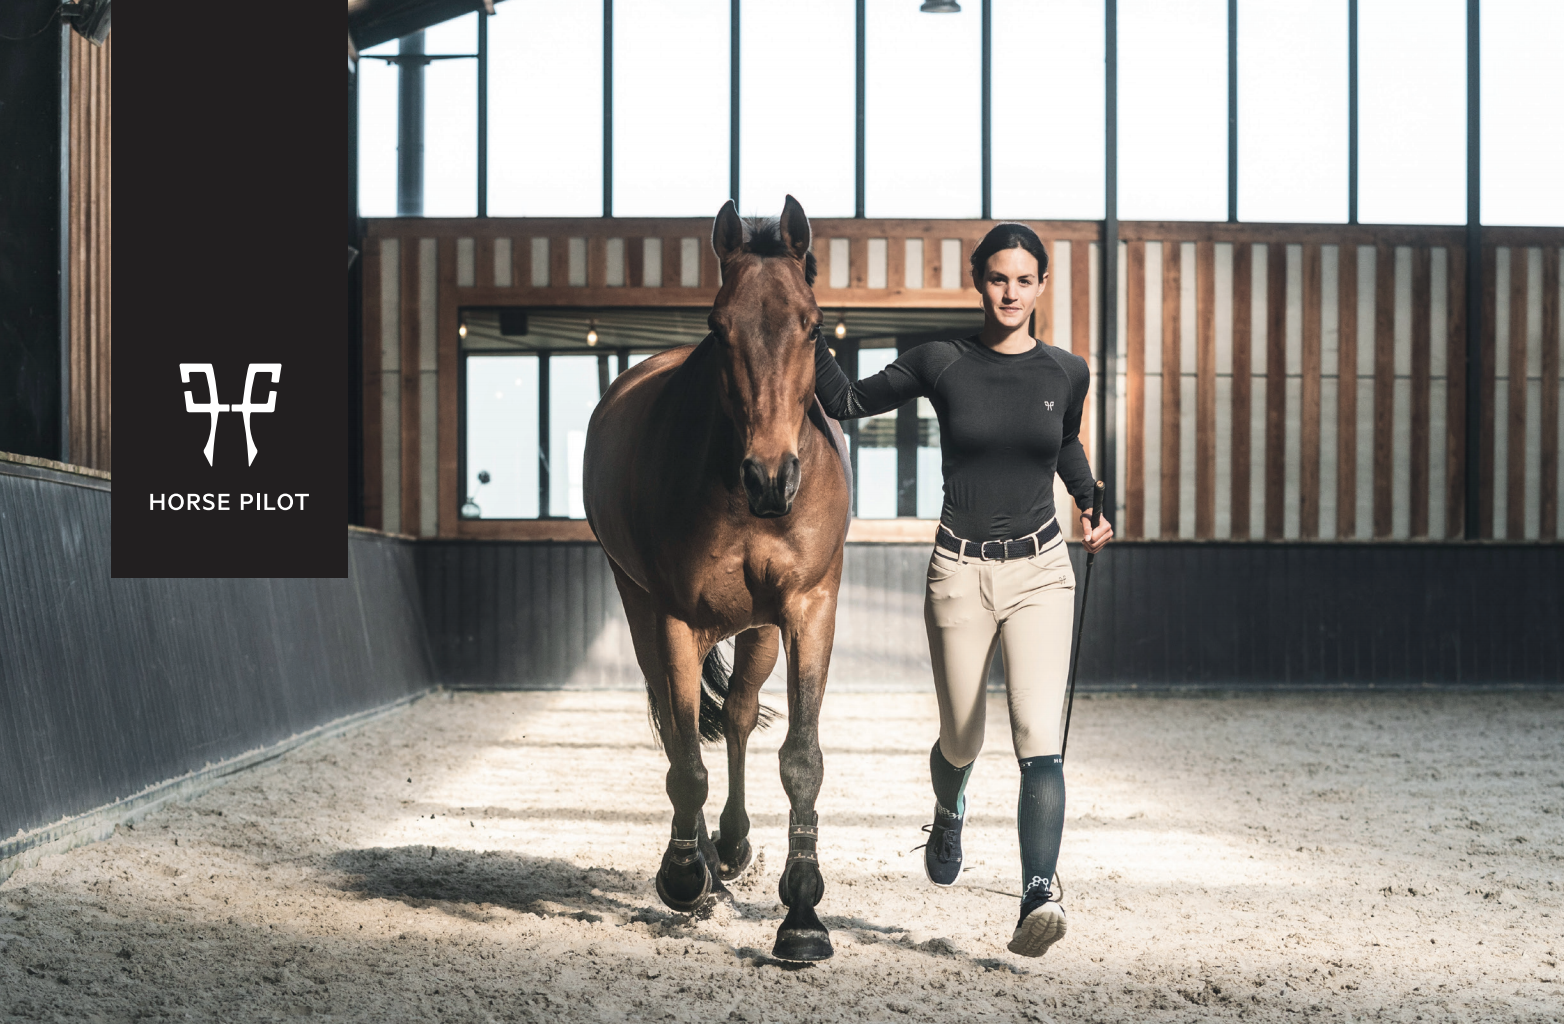 Horse pilot launches film: Why do you ride?